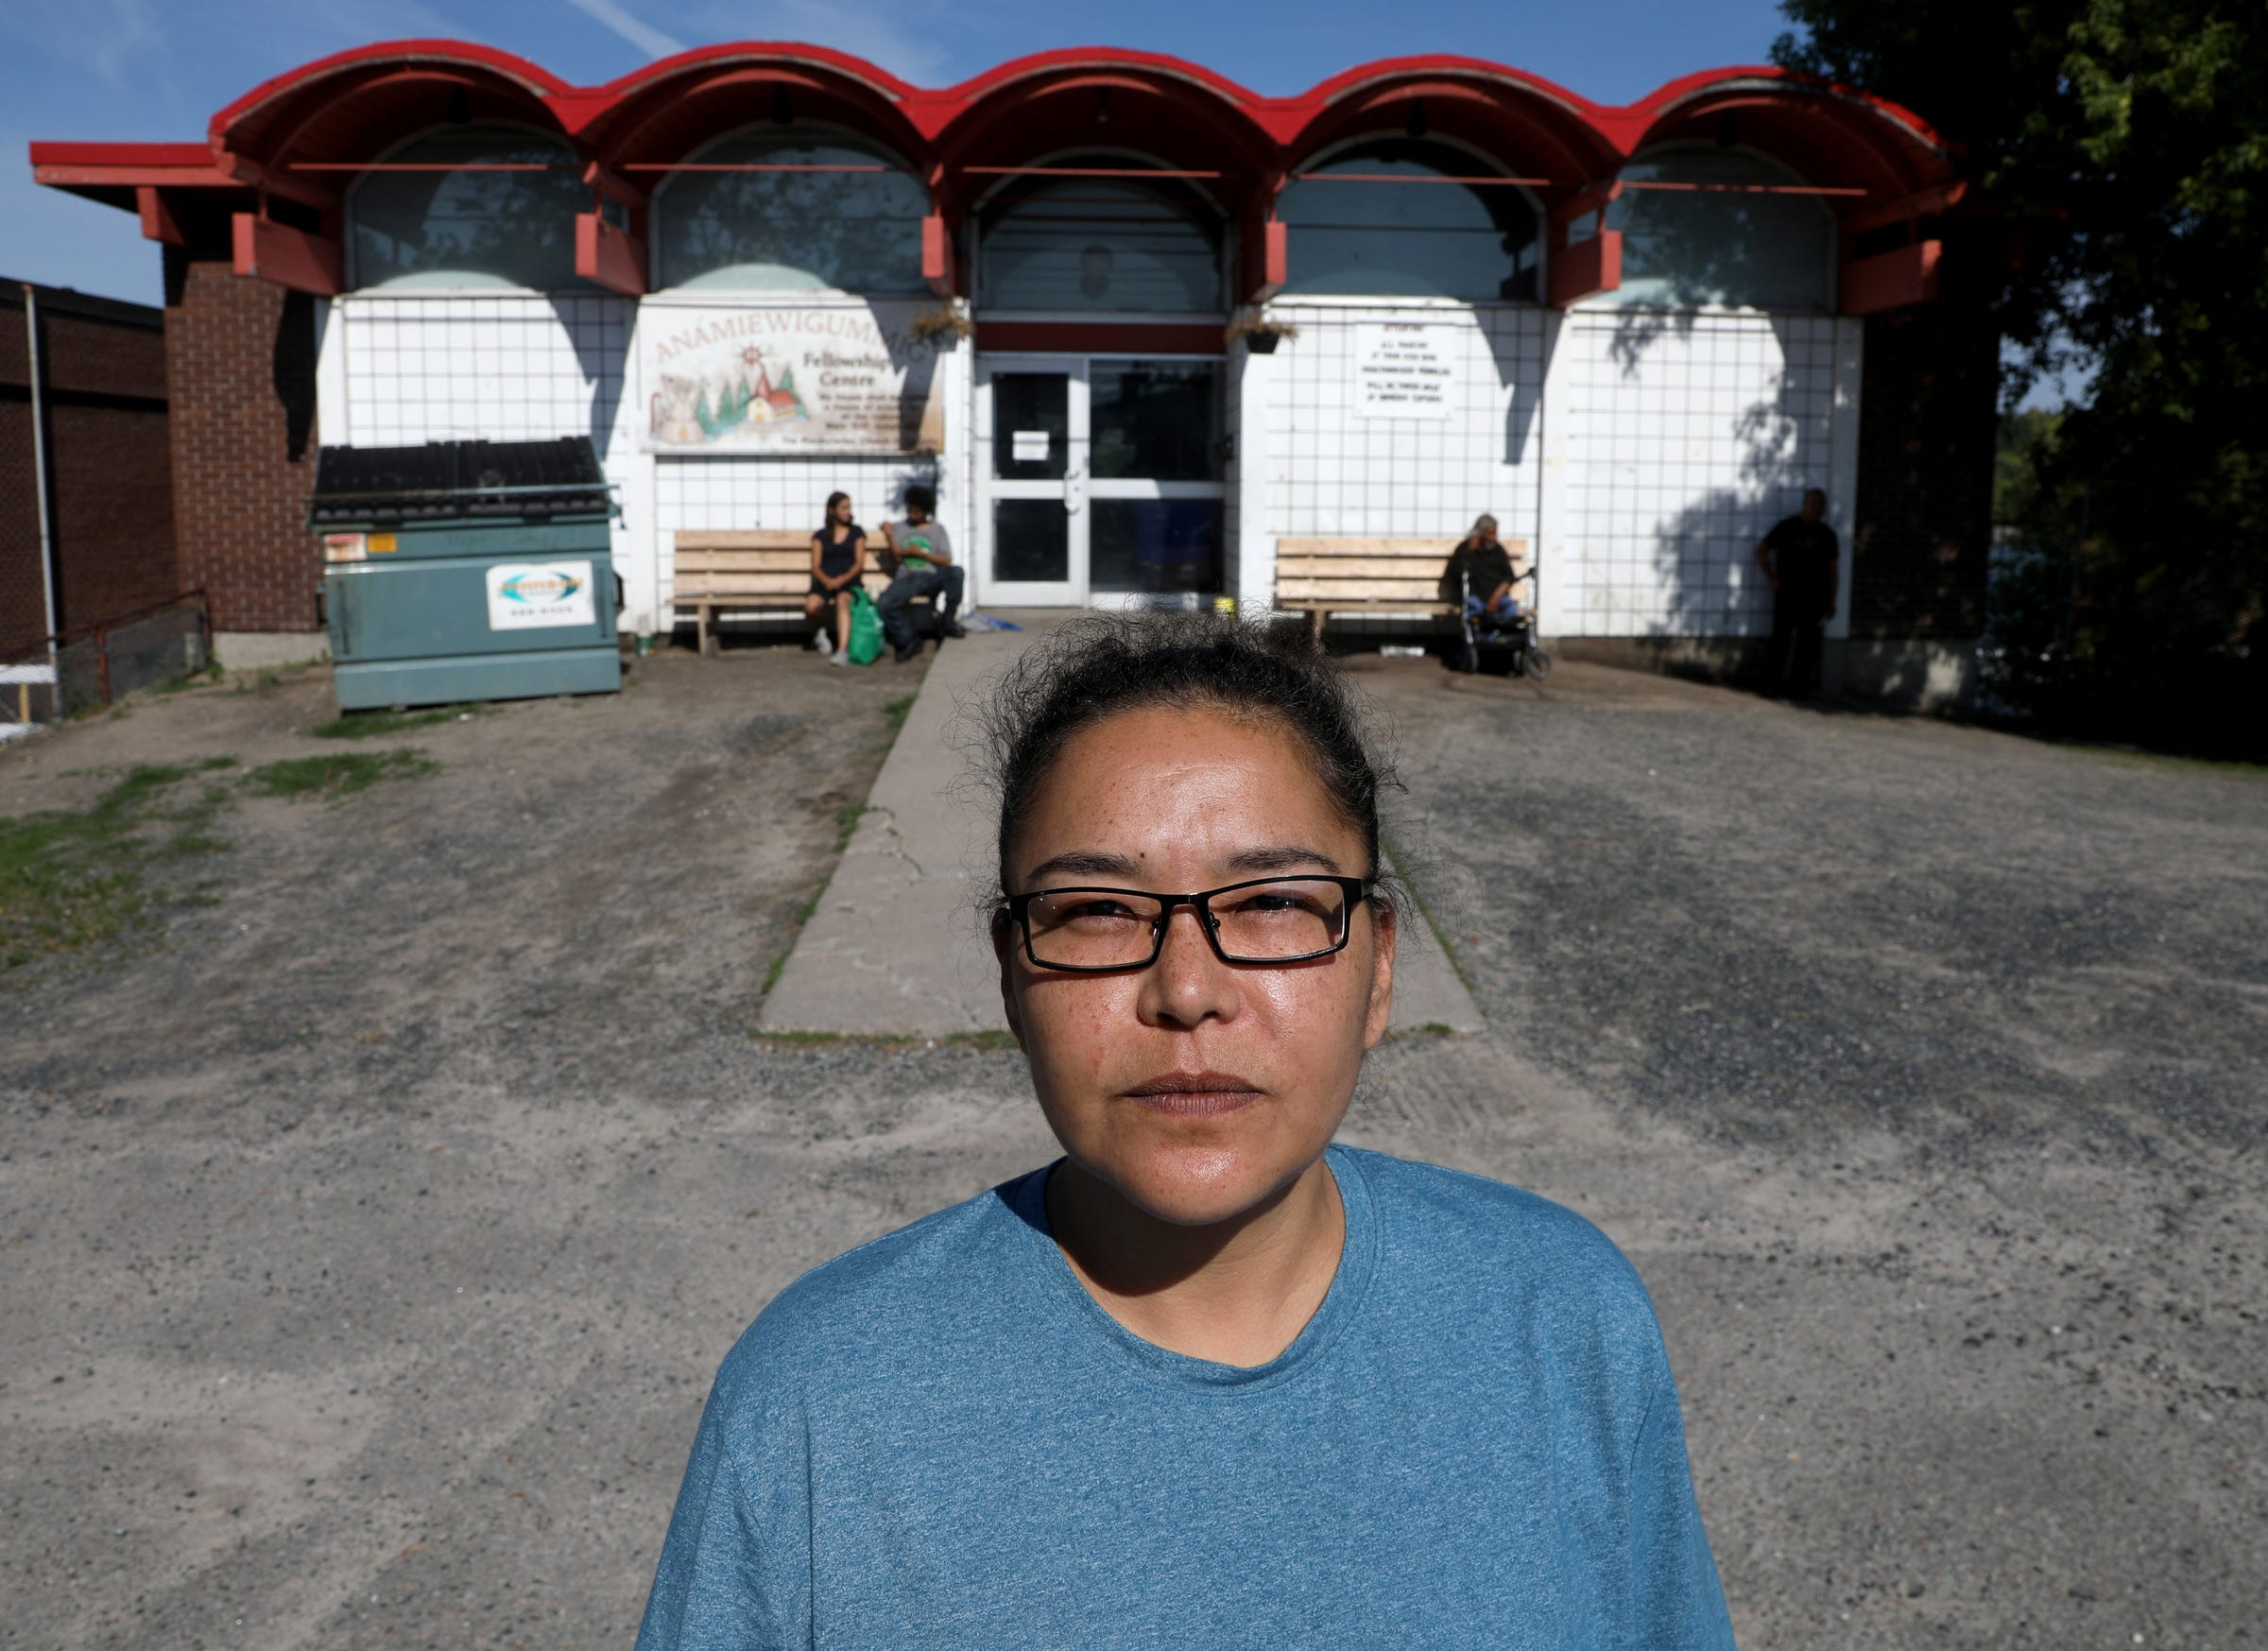 Bernice Albany, who is a supervisor at the Fellowship Centre in Kenora, Ontario, Canada sees Joe Murphy come into the shelter almost every morning or afternoon for a shower, new clothes and something to eat like he did this morning, Thursday, July 11, 2019.After living in a hotel in Kenora, Ontario, Canada set up by former NHL hockey players, former Detroit Red Wings player Joe Murphy is back on the streets of that city and homeless.